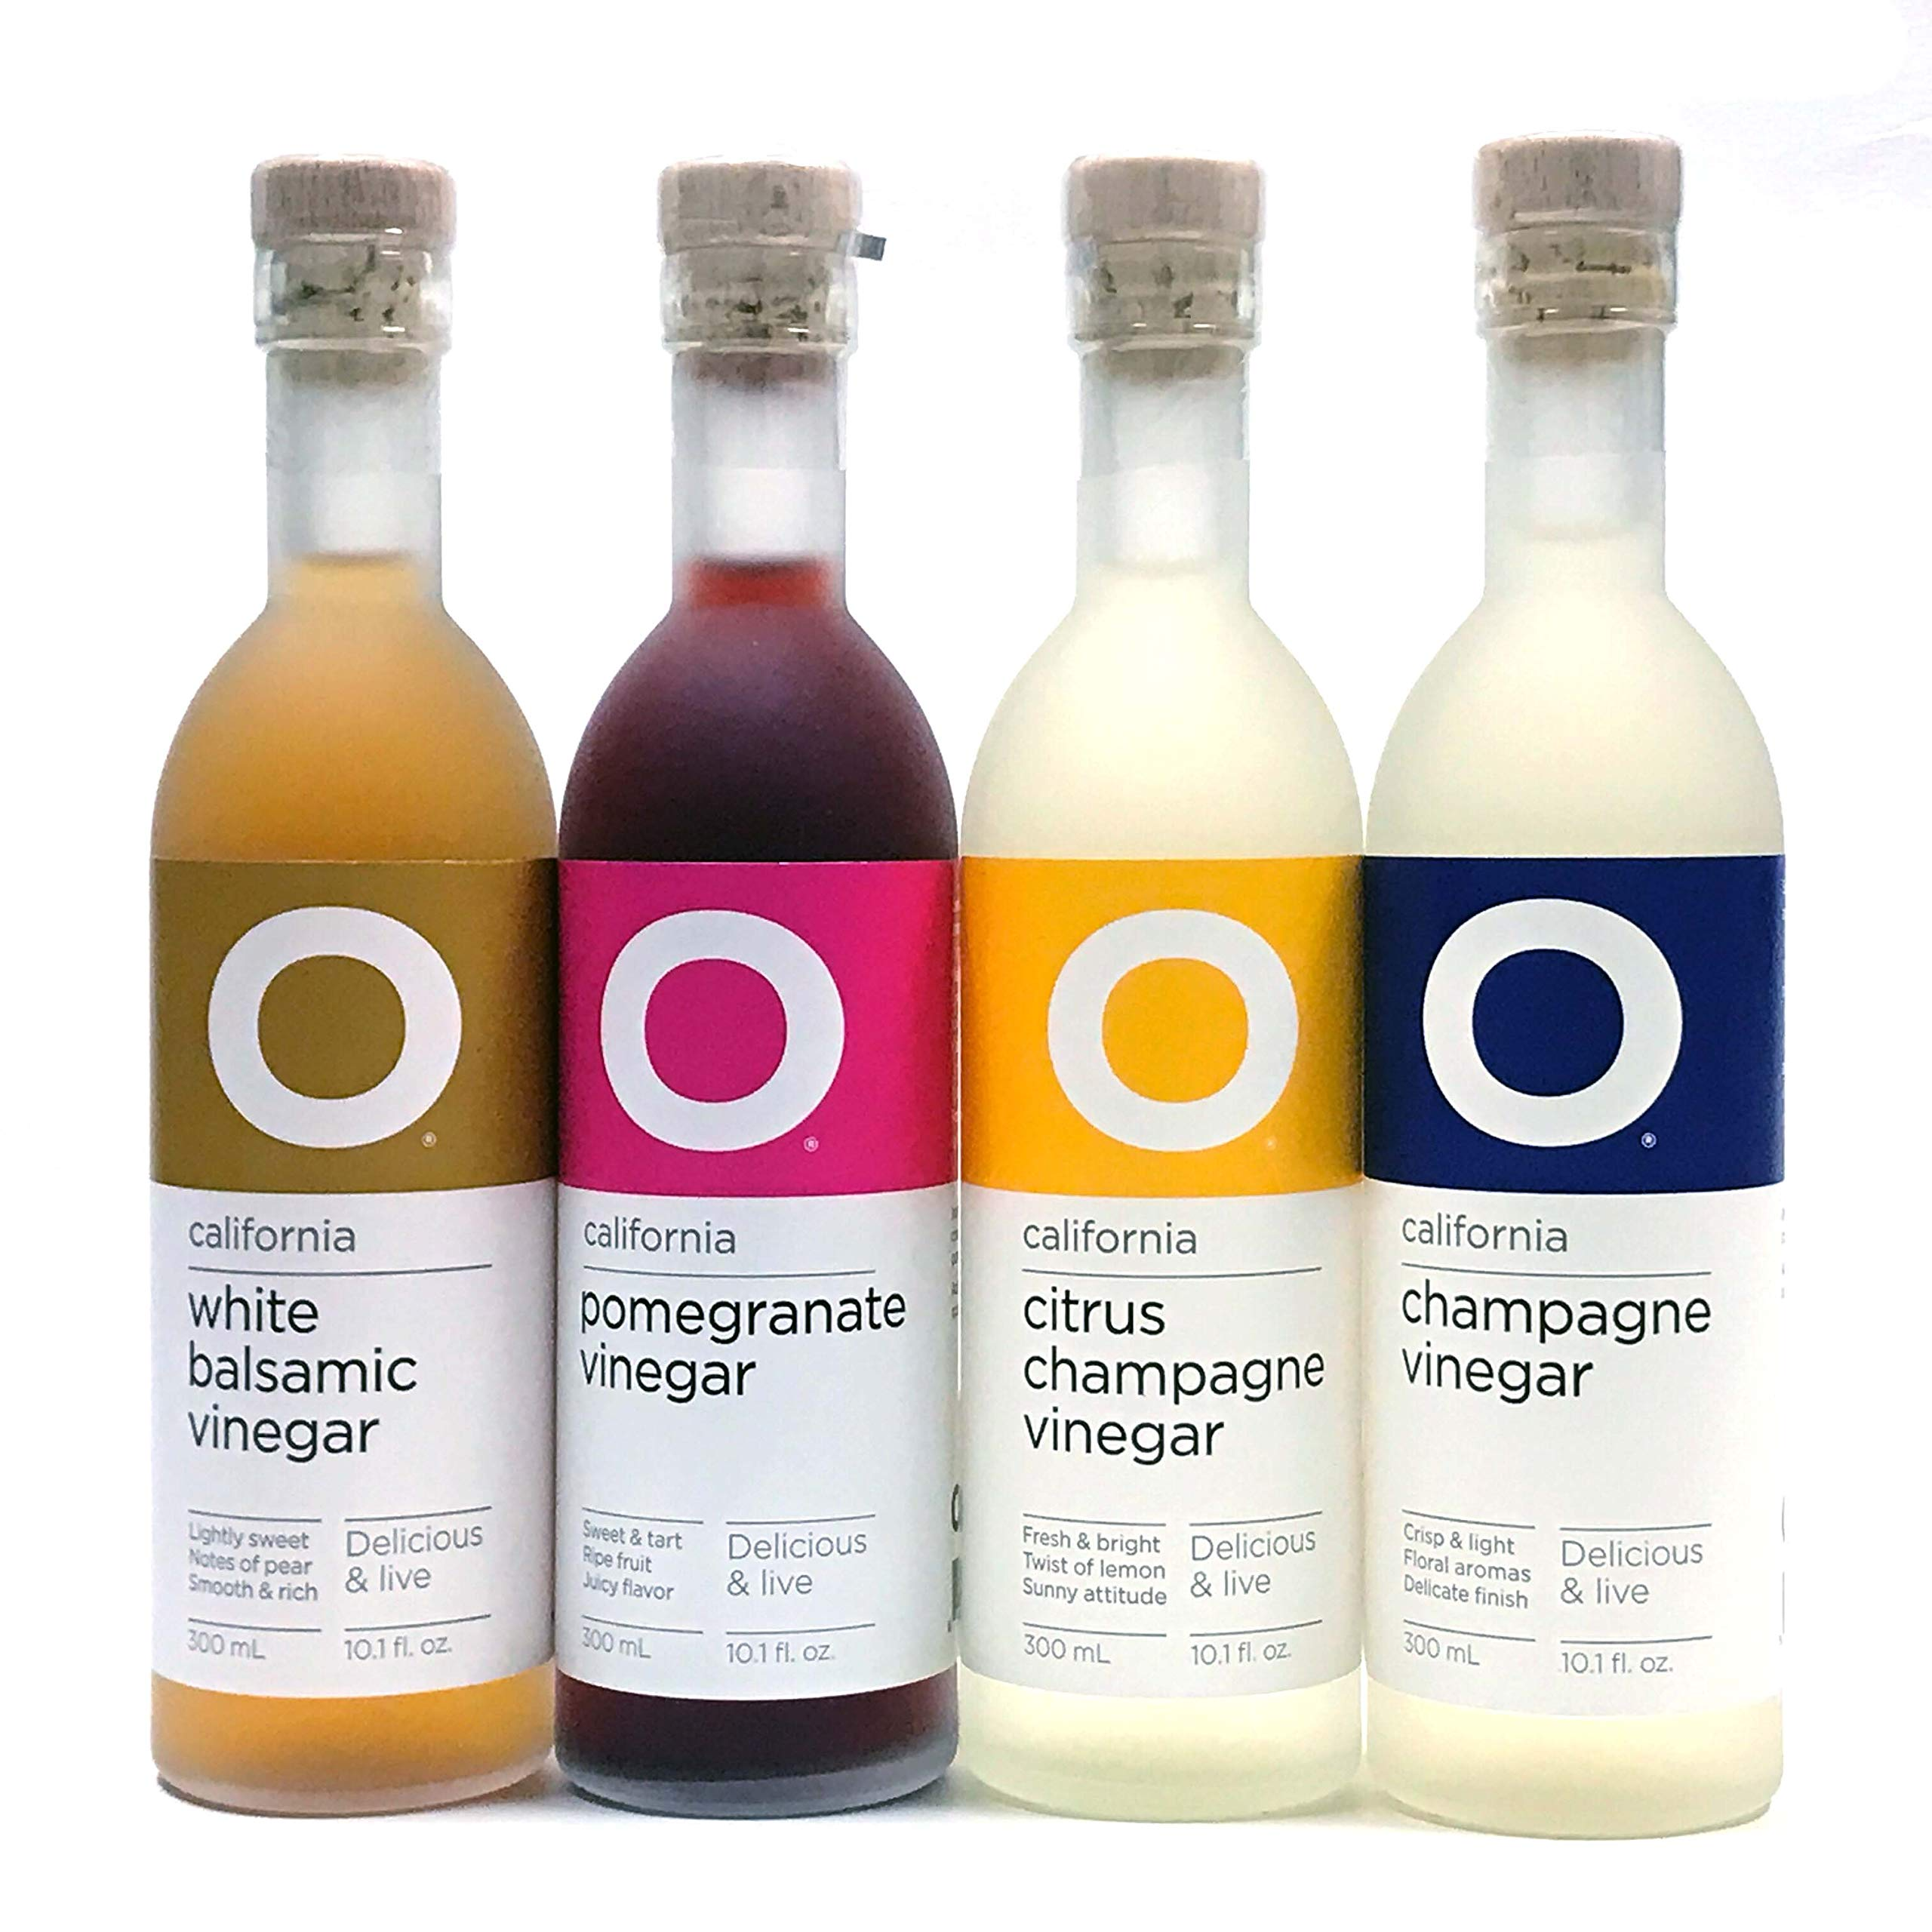 O Olive Oil Vinegar 4 Variety Pack - Citrus Champagne Vinegar, Pomegranate Vinegar, Champagne Vinegar, White Balsamic Vinegar by O Olive Oil